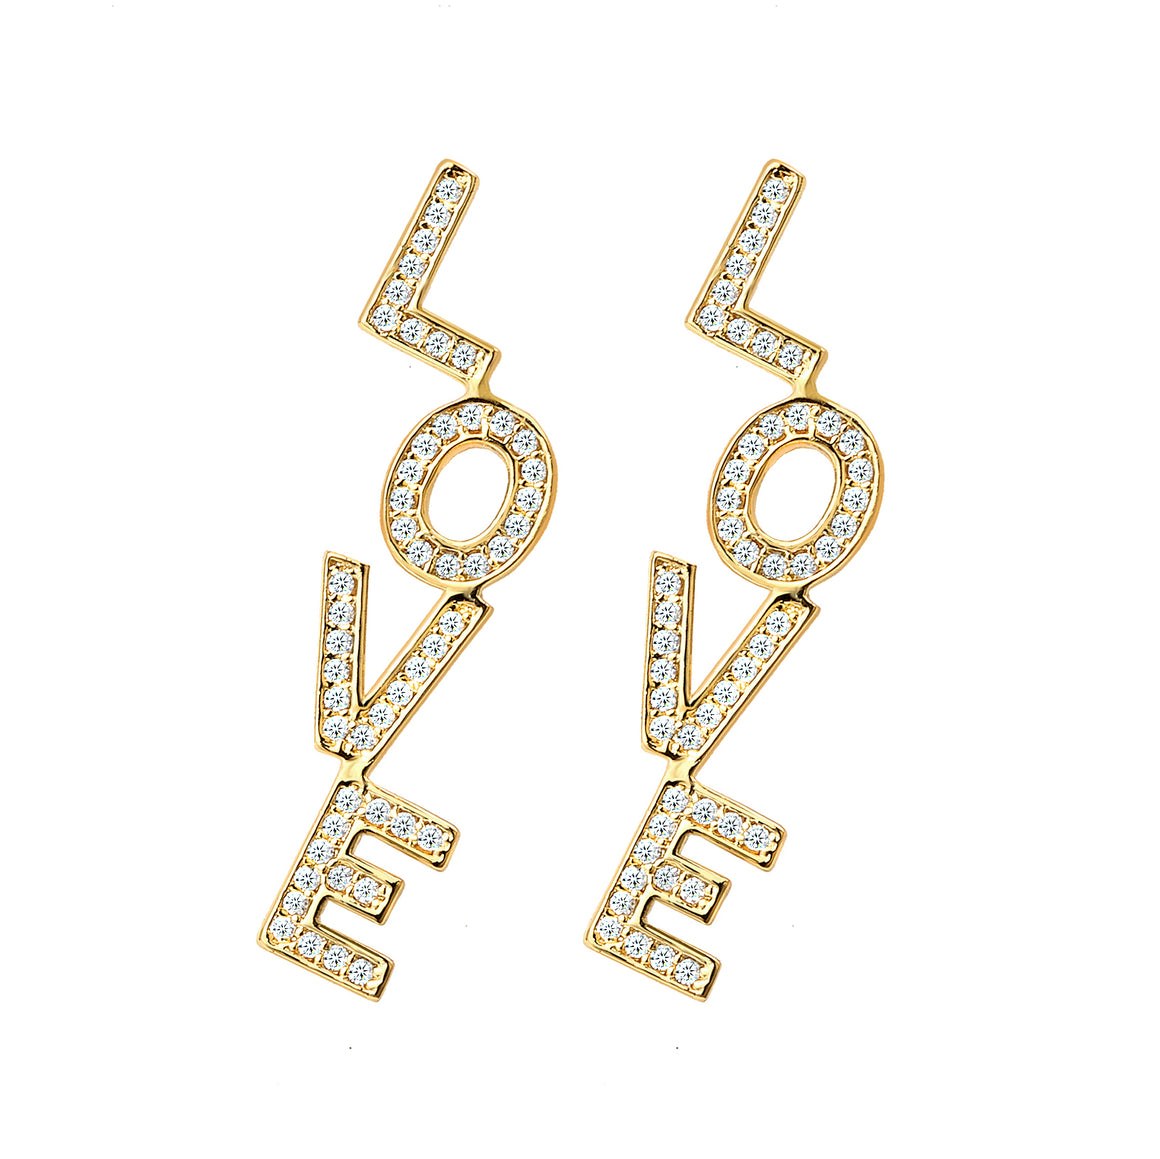 Love Earring Dangle, Clear CZ Paved Gold Framed Letter Style Earring